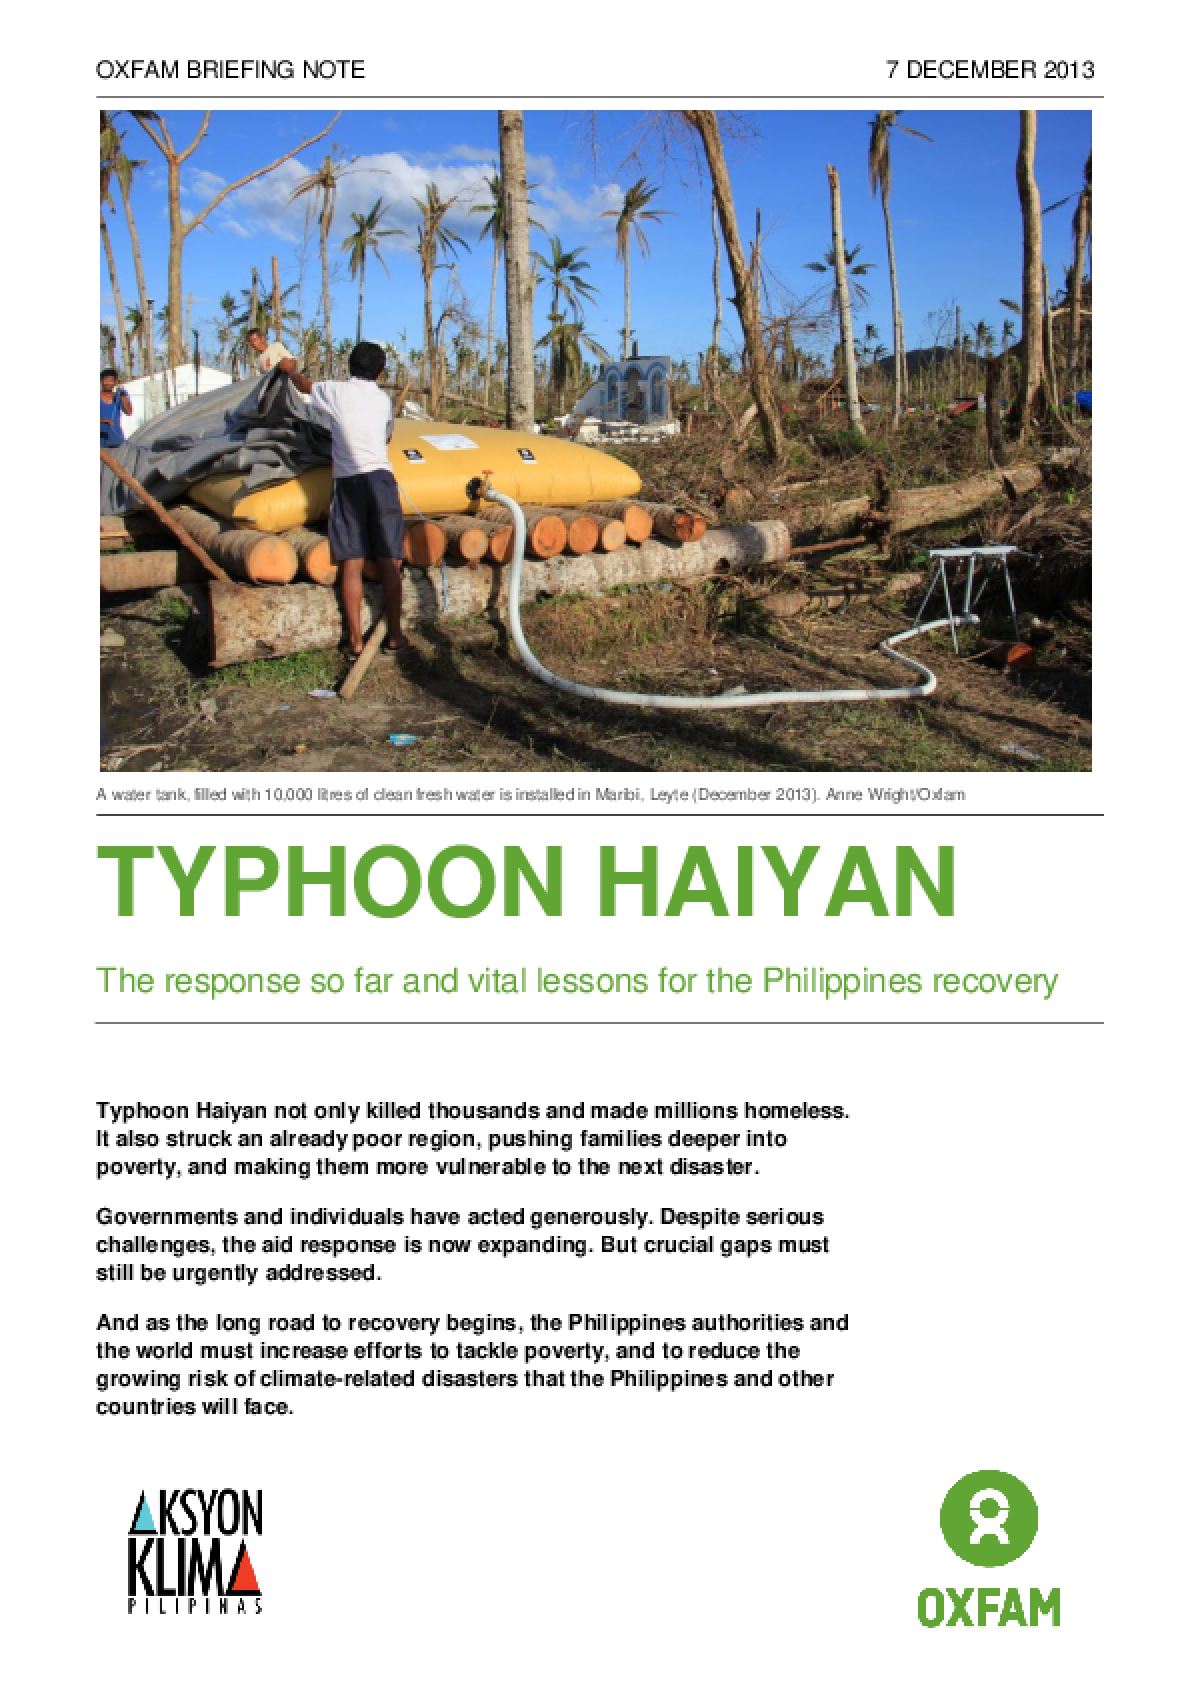 Typhoon Haiyan: The response so far and vital lessons for the Philippines recovery